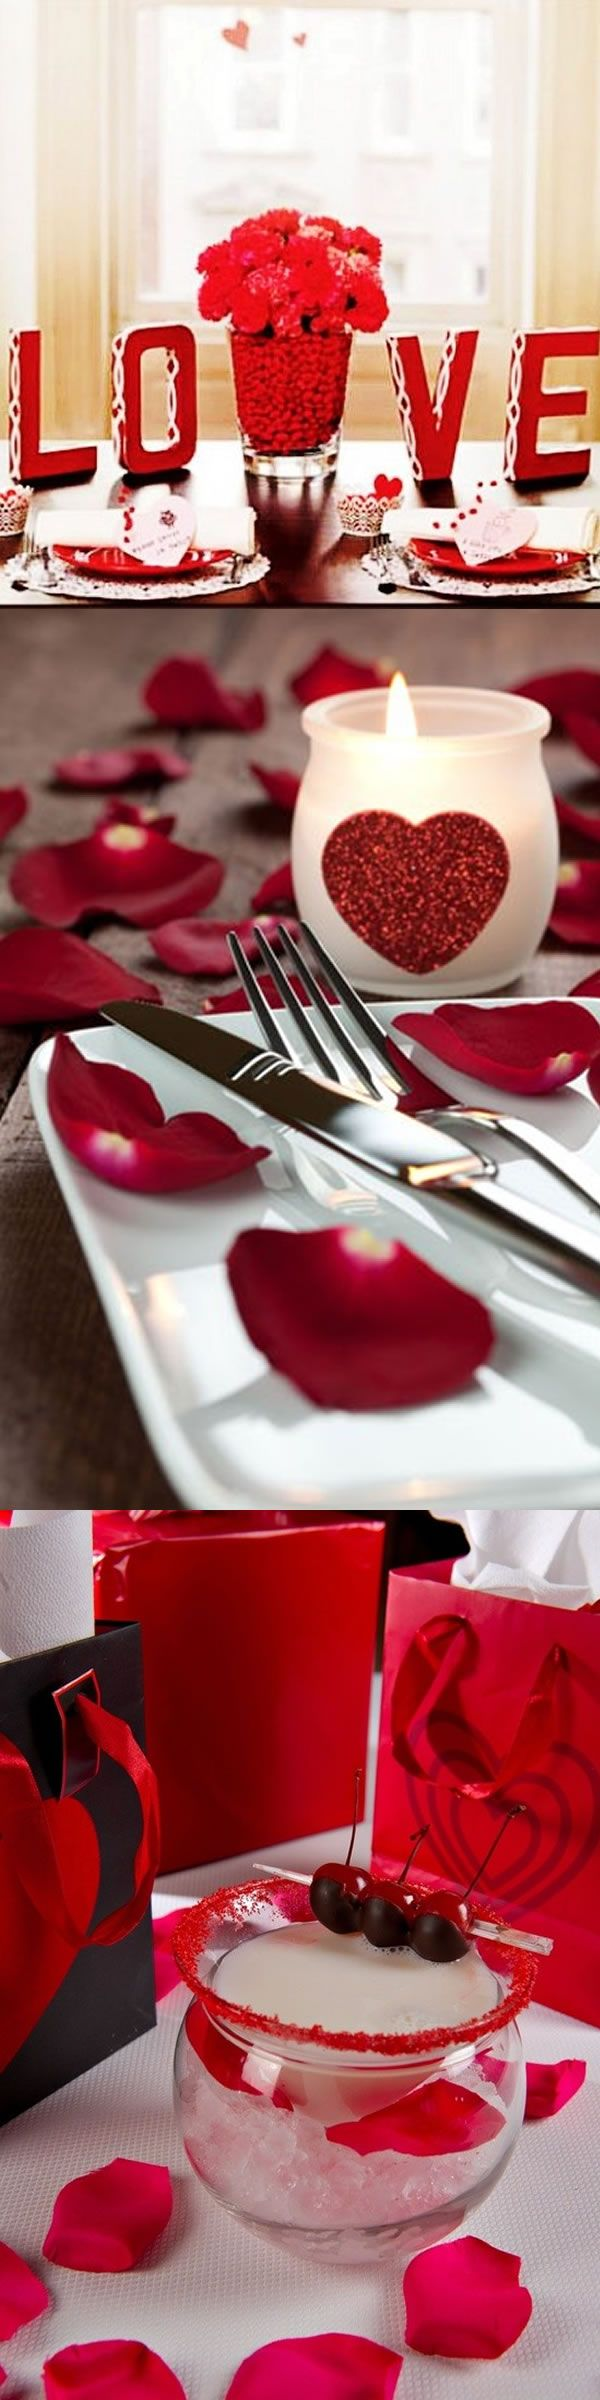 Valentine 39 s day dinner ideas rose love 2014 valentine for Valentines dinner party ideas